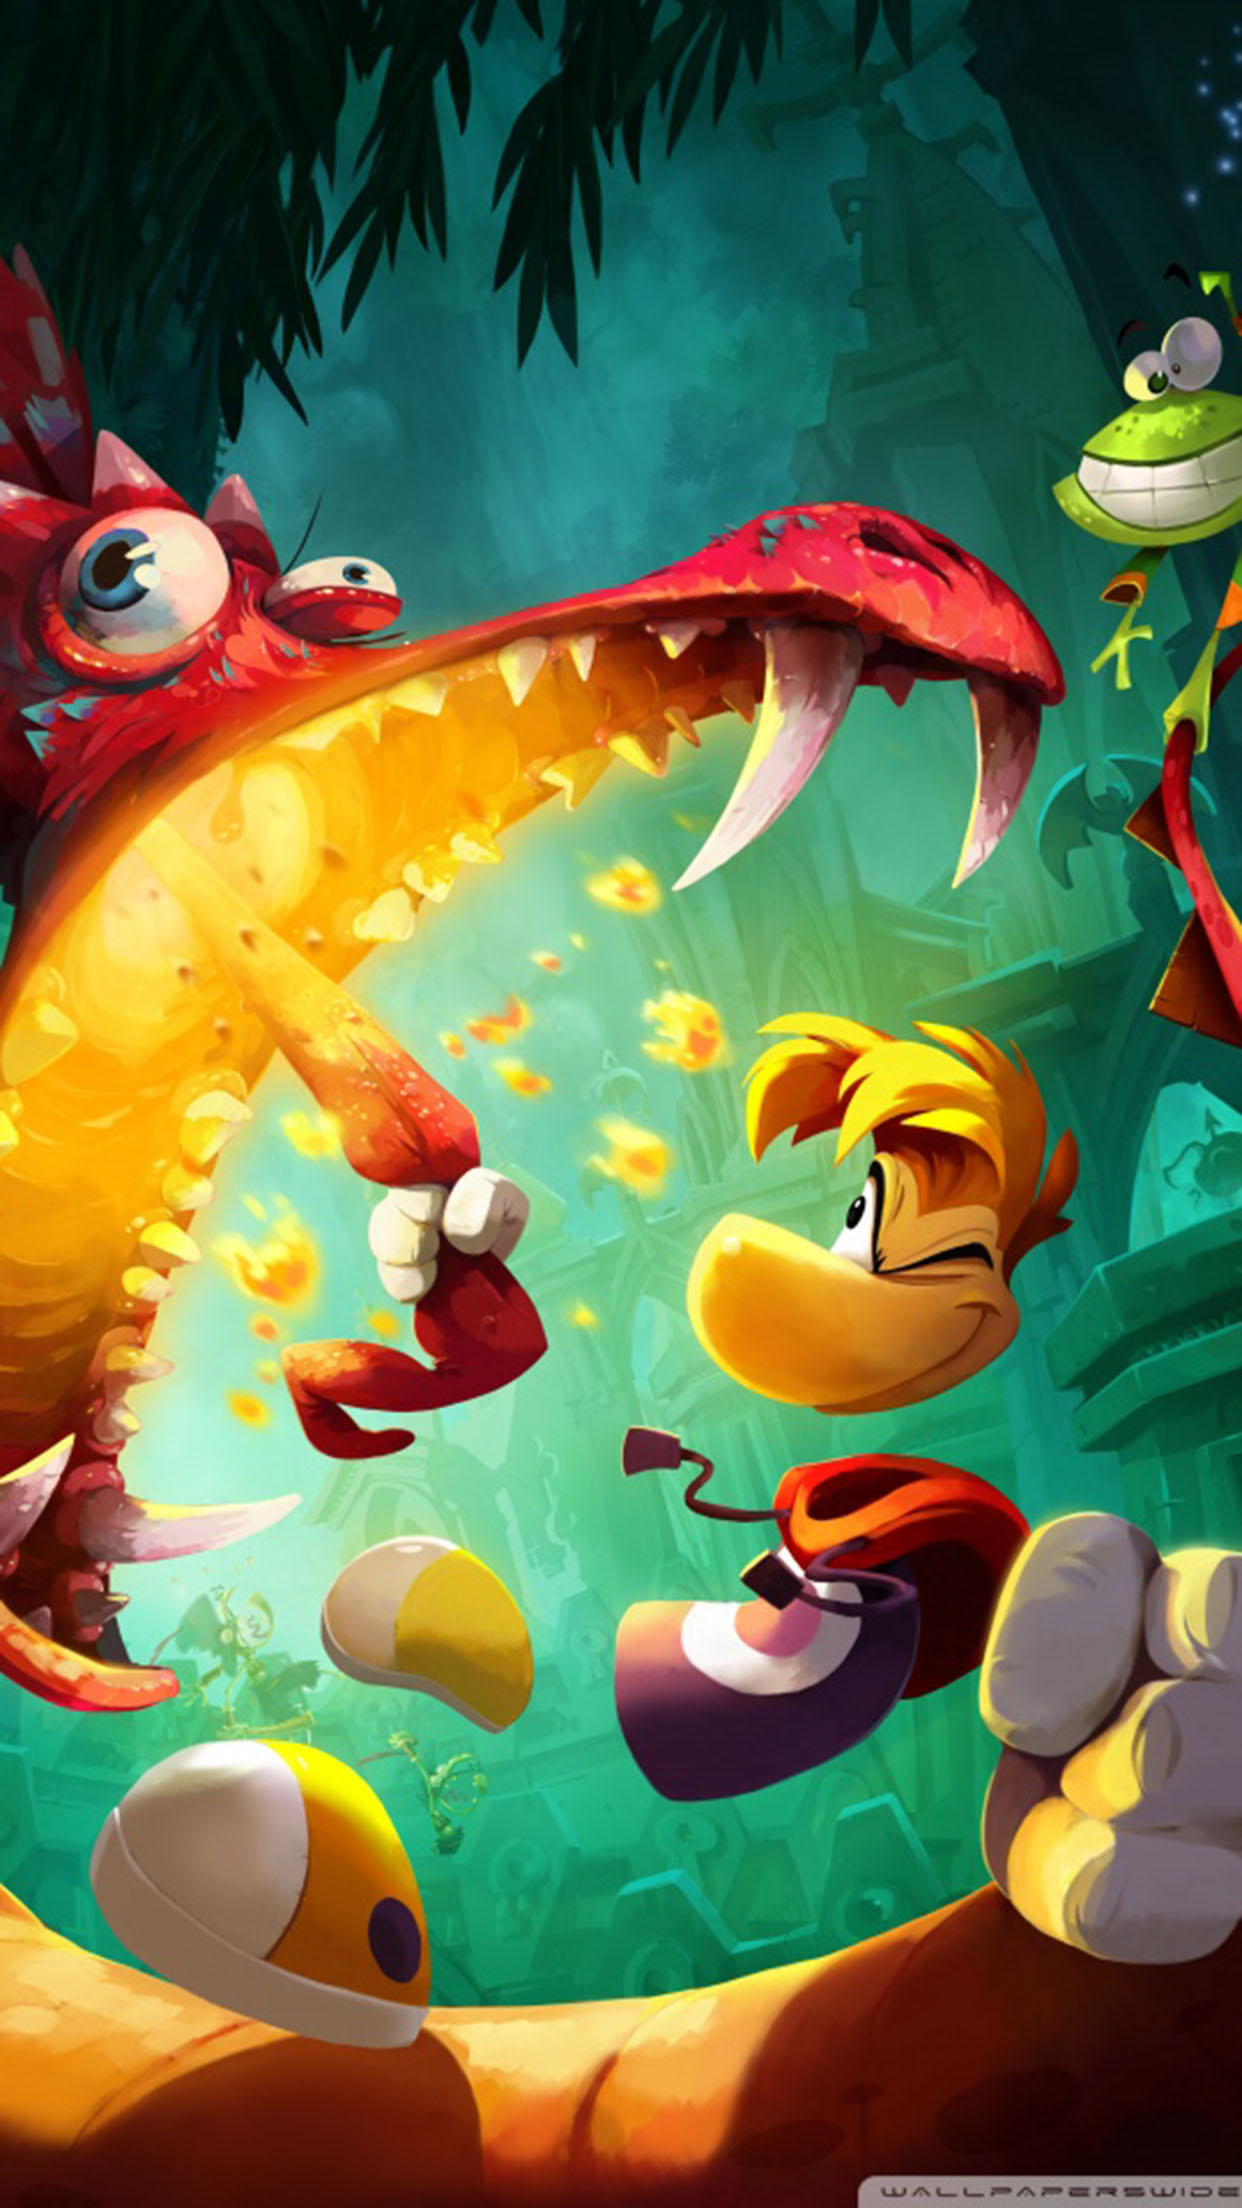 Rayman legends Rayman attack 3Wallpapers iPhone Parallax Rayman attack